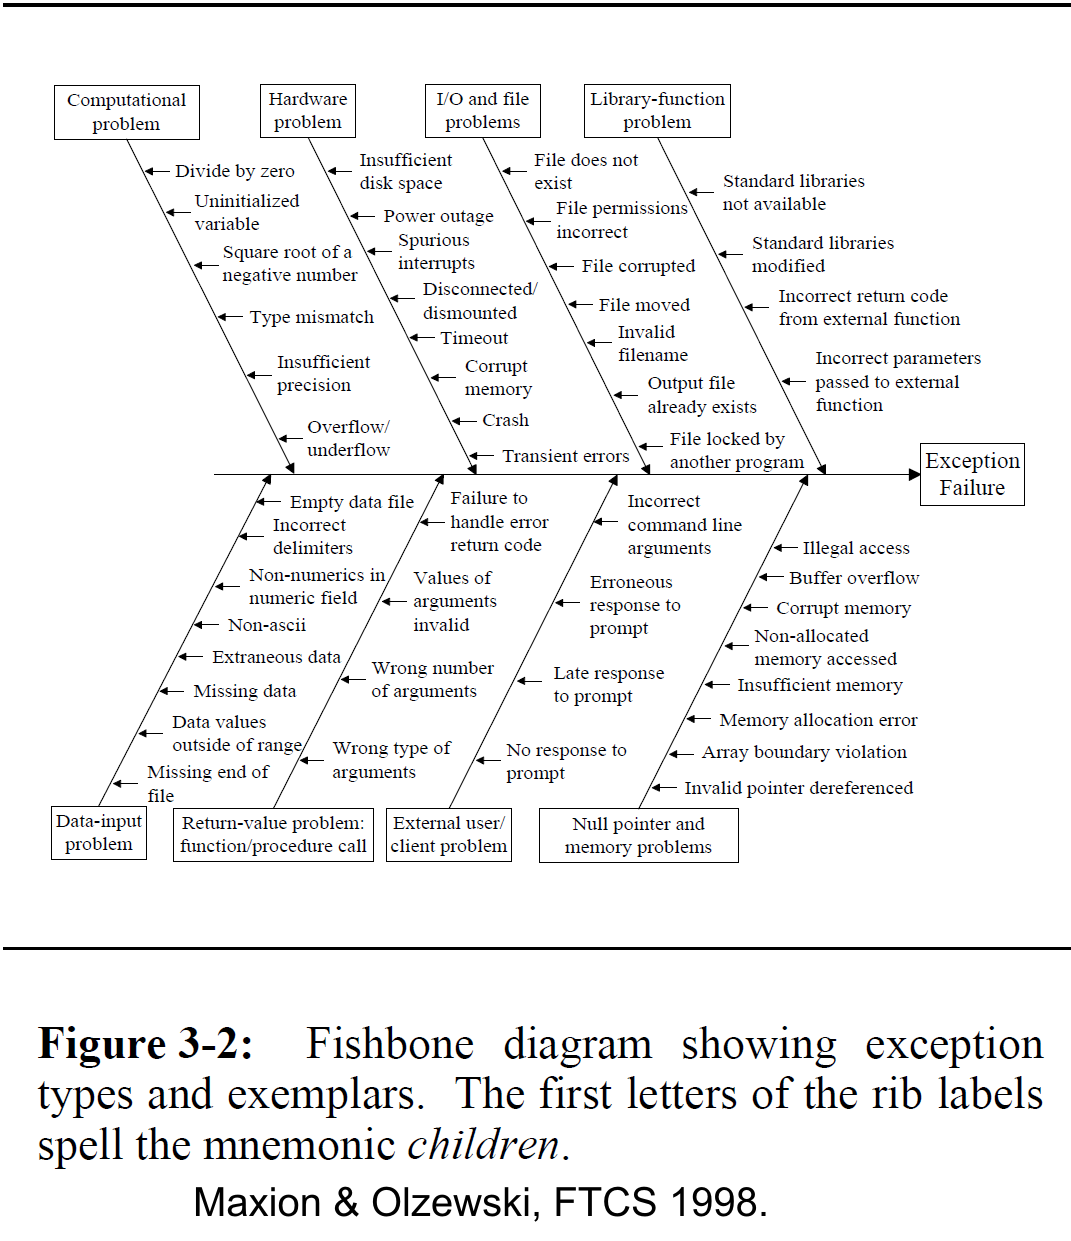 Better embedded system sw exception handling fishbone diagram conditions to consider when designing a robust system in the form of a fishbone diagram click on the diagram to see the full detail in a new window ccuart Choice Image